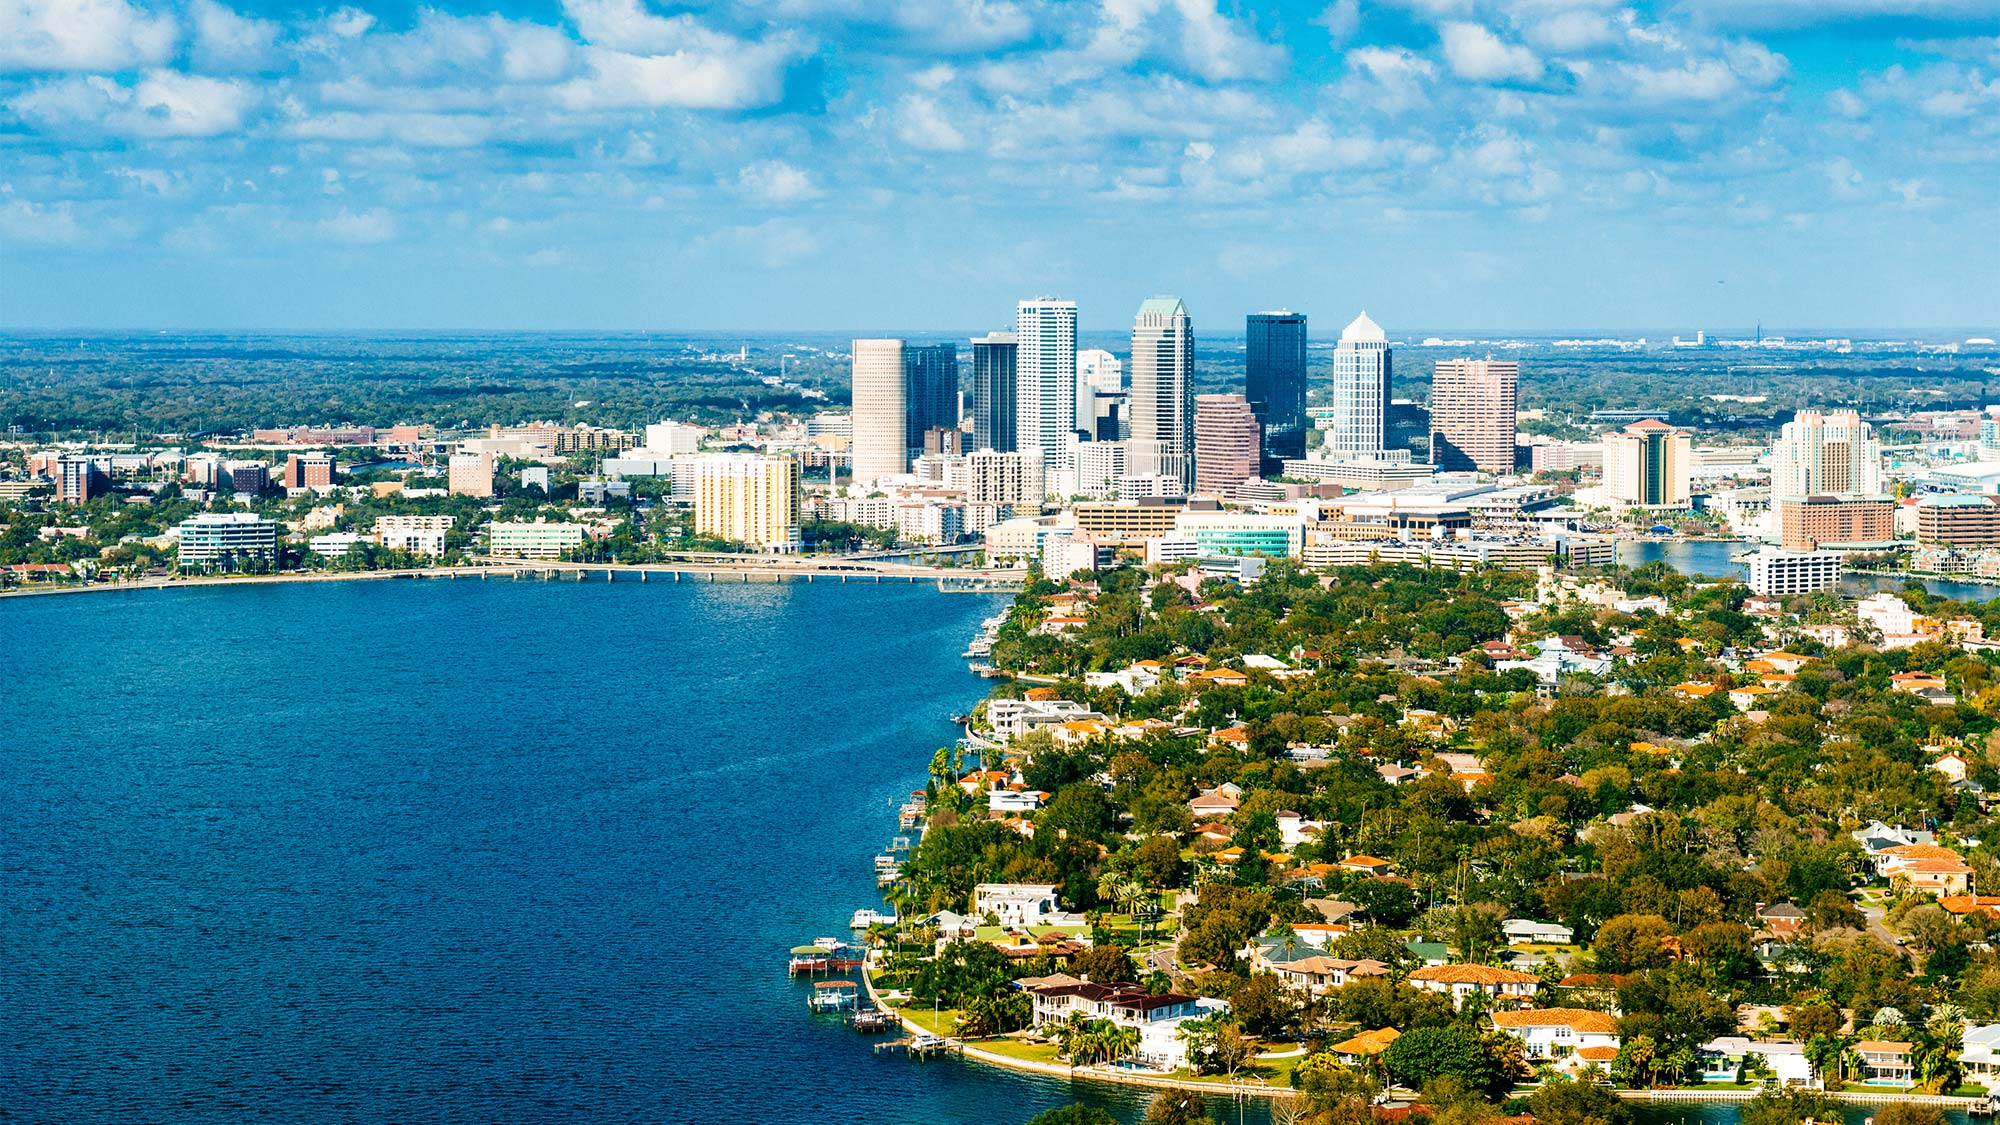 1cd0e tampa suburban The 10 US Cities With the Fastest Growing Suburbs